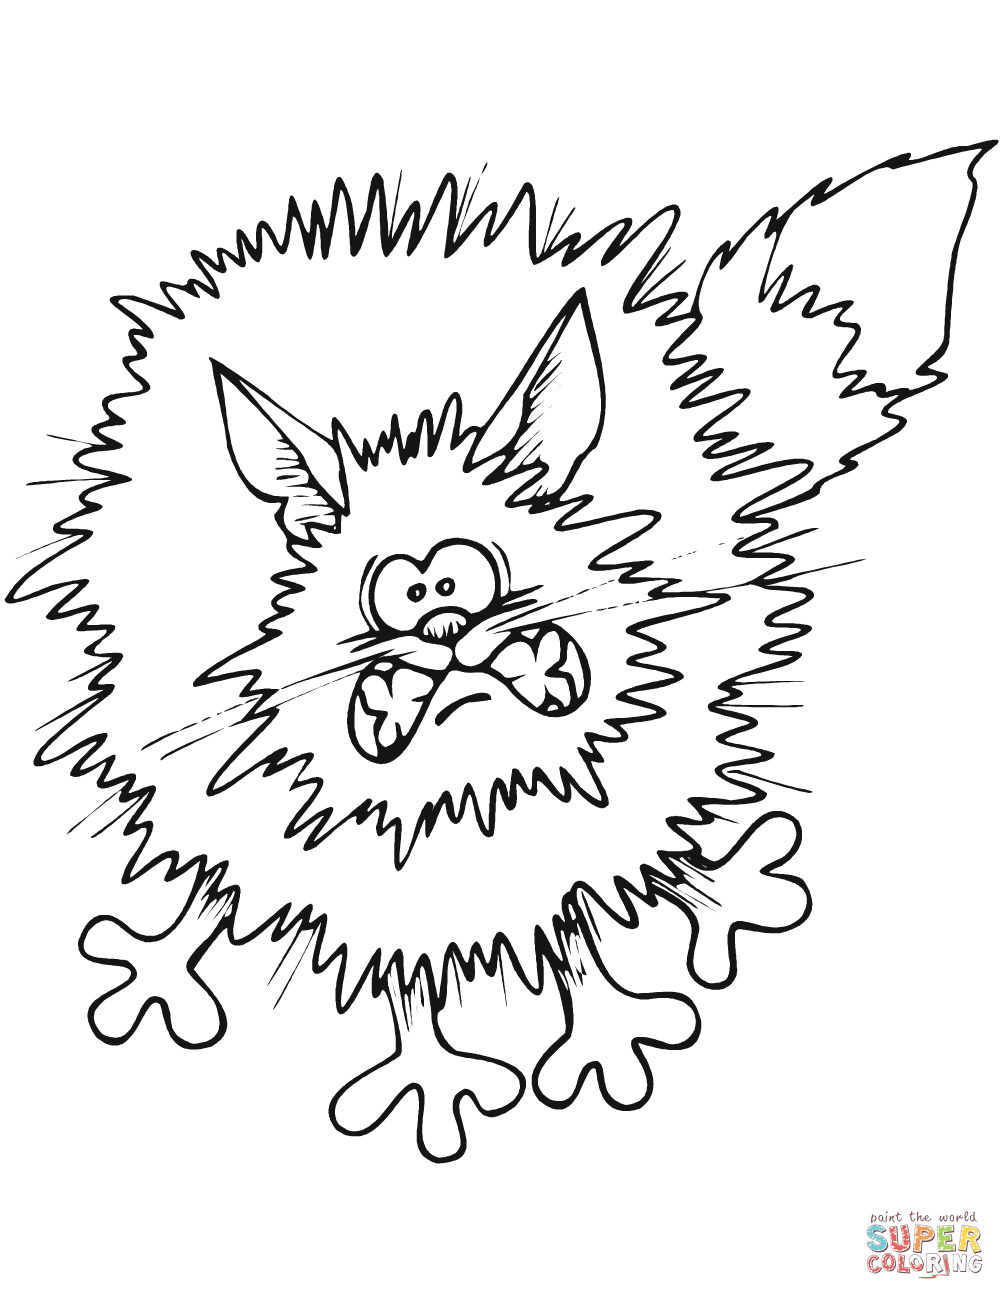 cartoon black cat coloring page free printable coloring pages